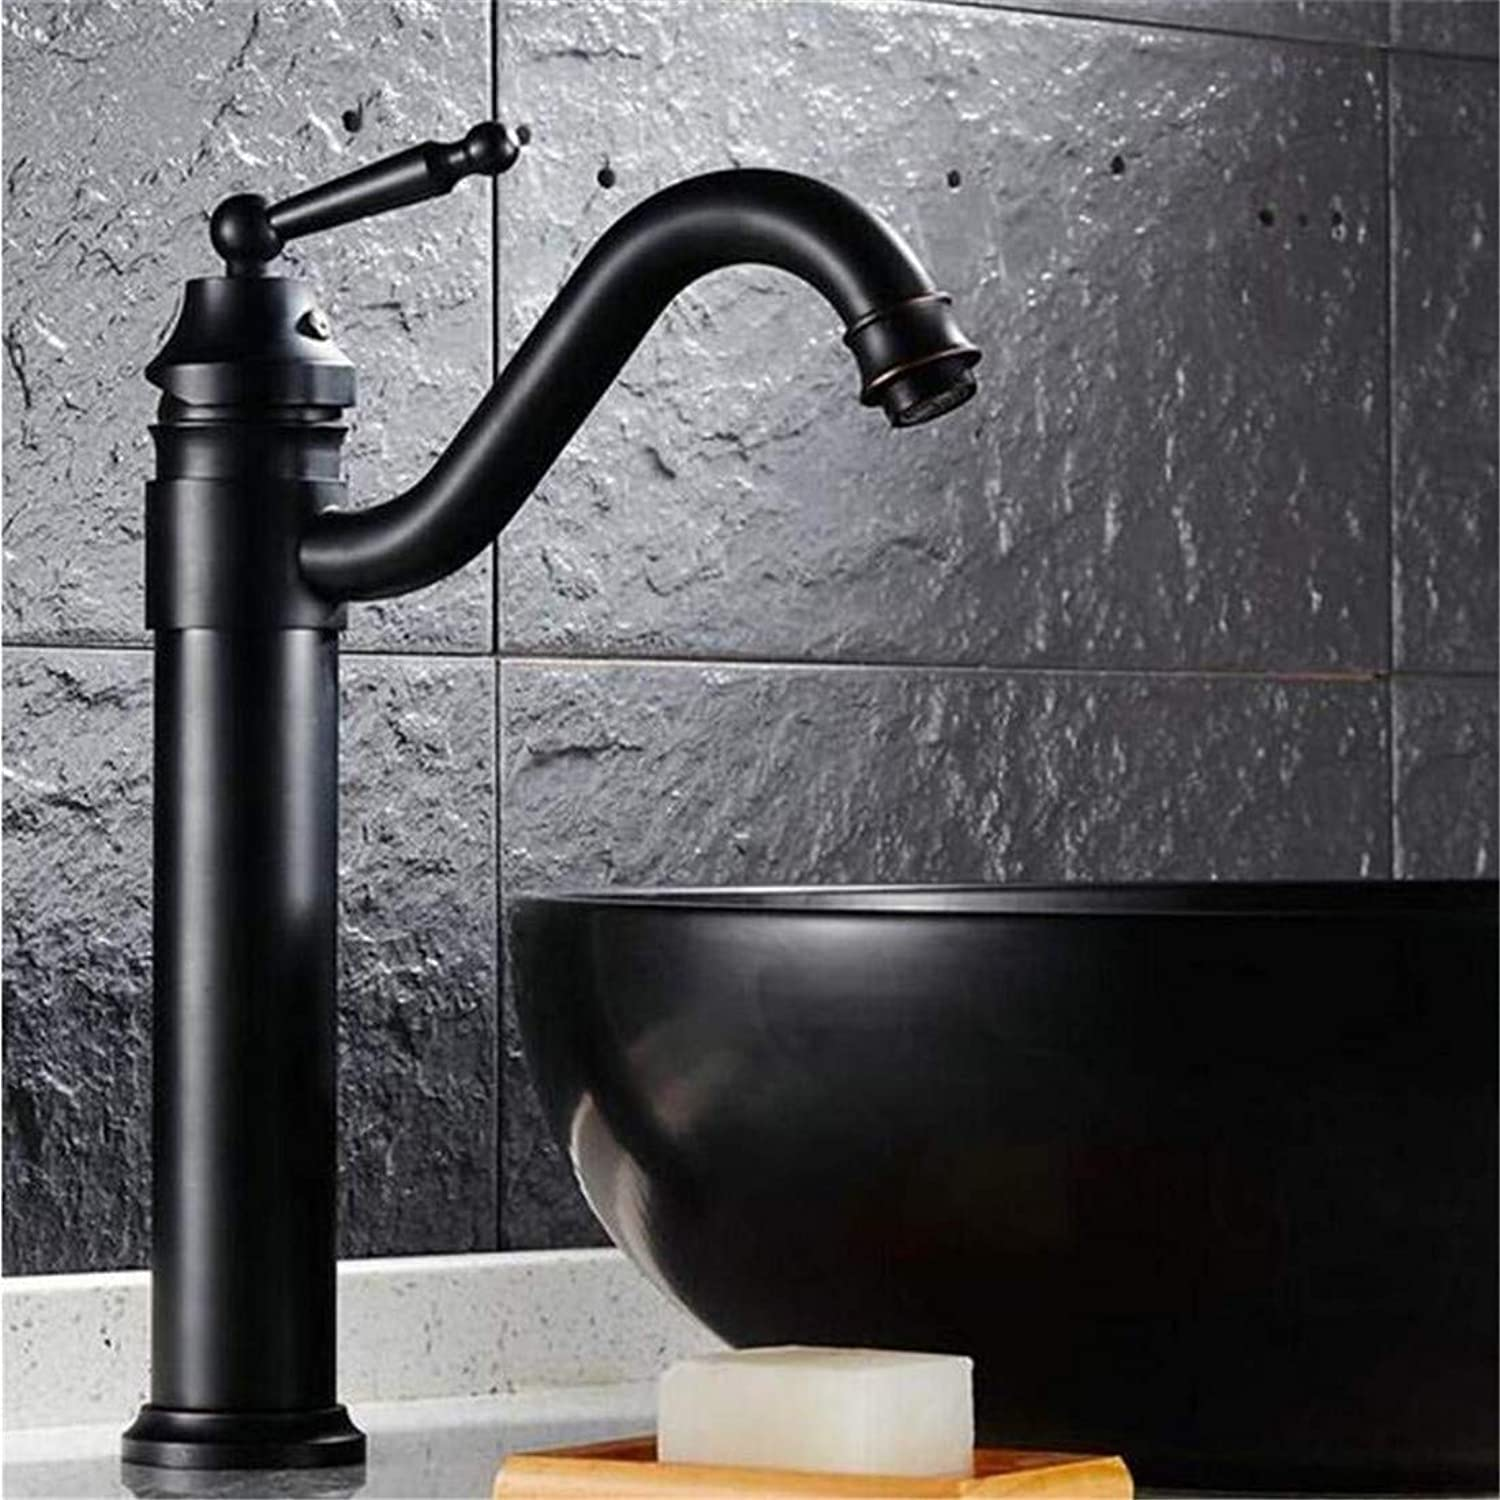 Retro Hot and Cold Water Brass Kitchen Sink Basin Faucet Black Brass Ceramic Handle Retro Style Mixer Tap